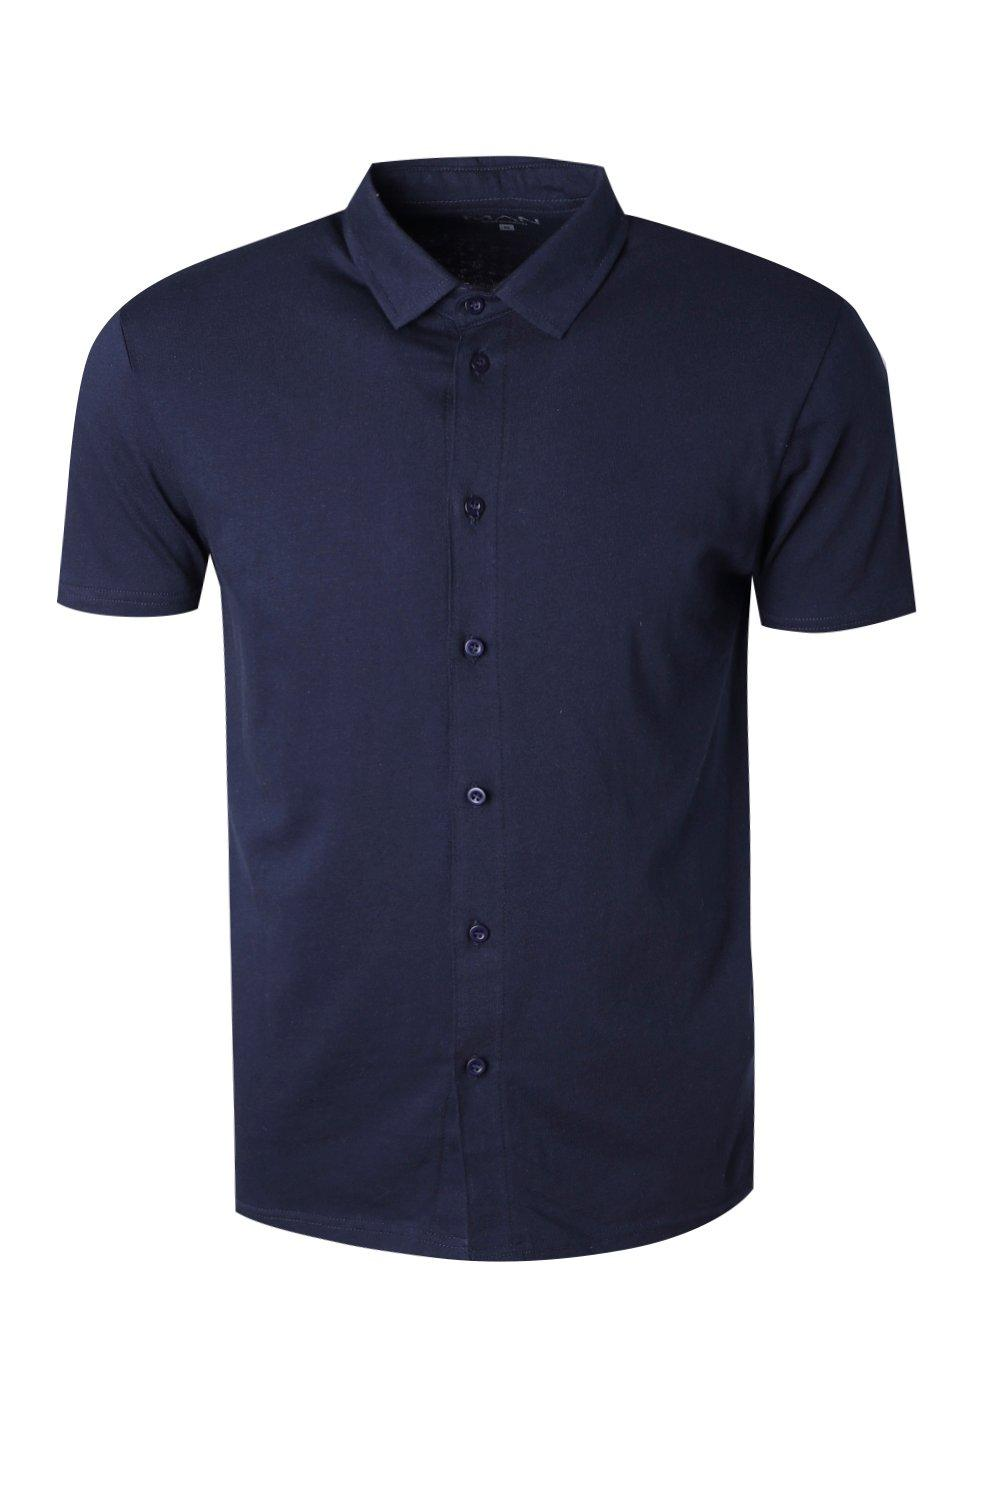 boohooMAN navy Muscle Fit Short Sleeve Jersey Shirt